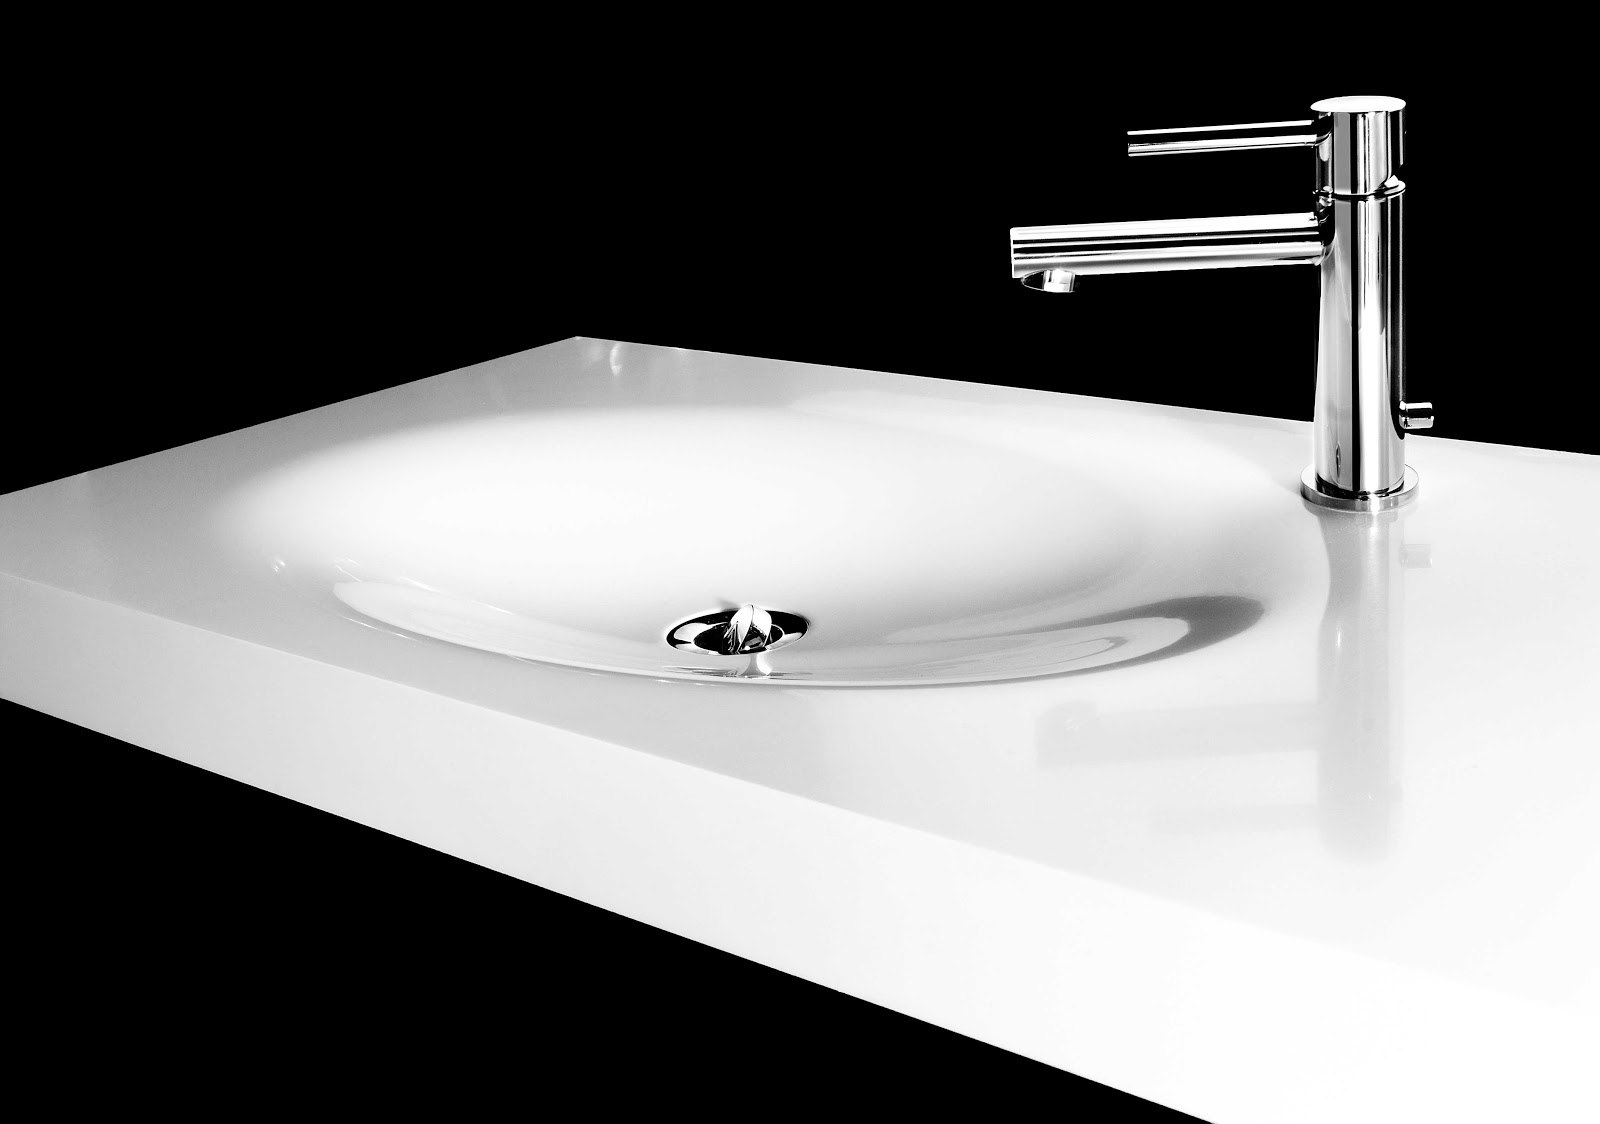 ... Scoop?ED bathroom wash basin by Minosa? - Modern Corian Hand Basin